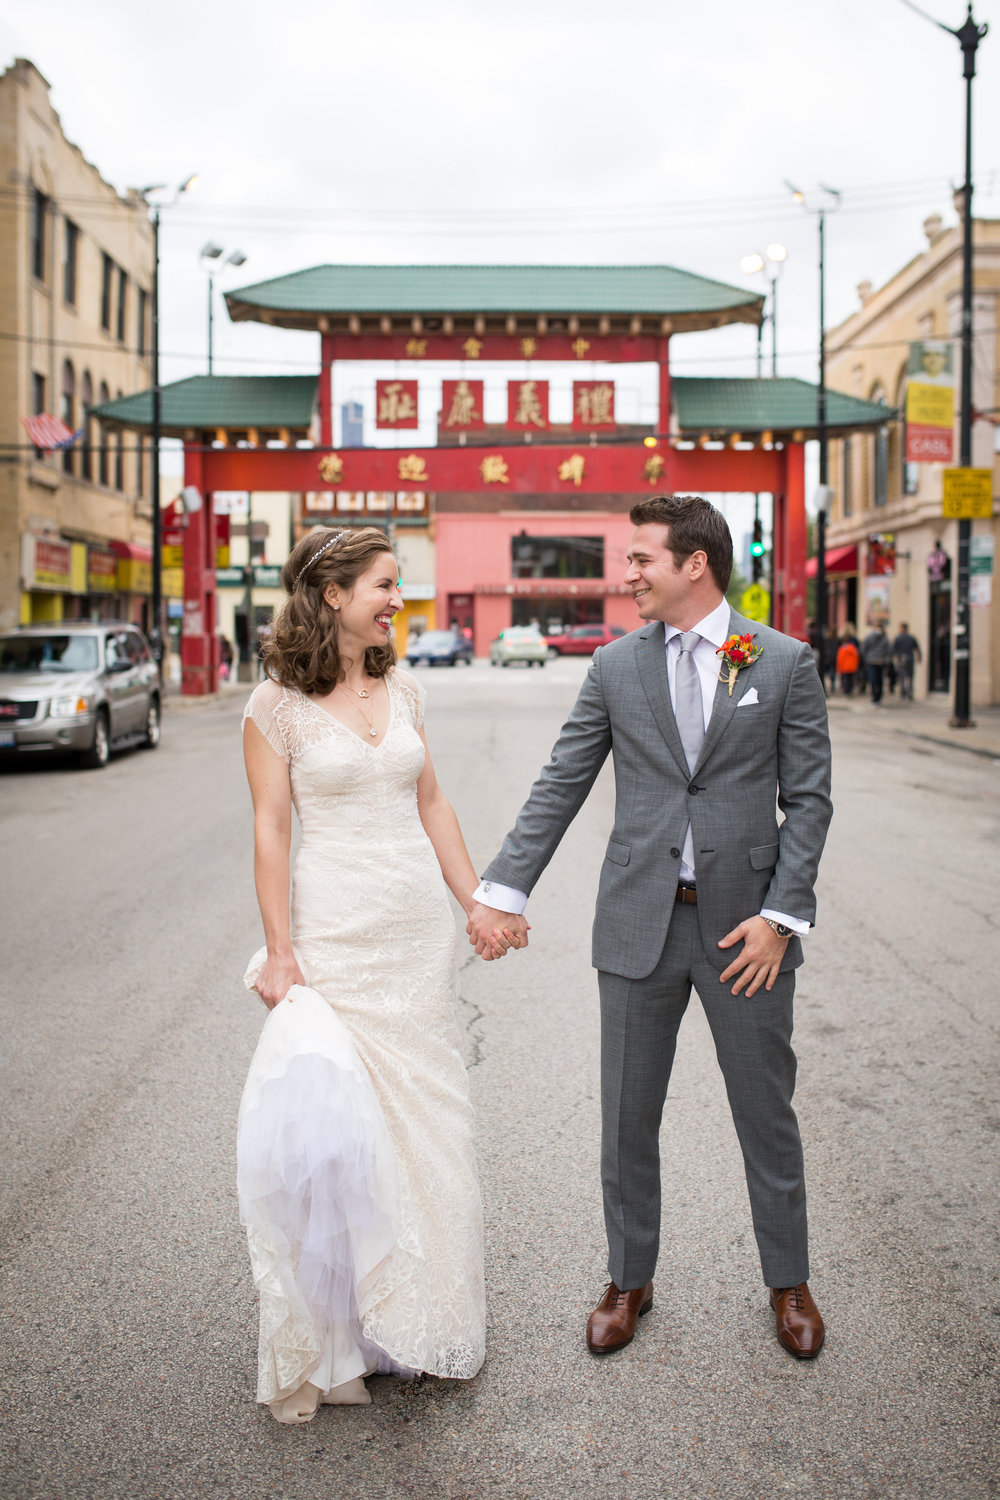 Wedding photography in China Town Chicago